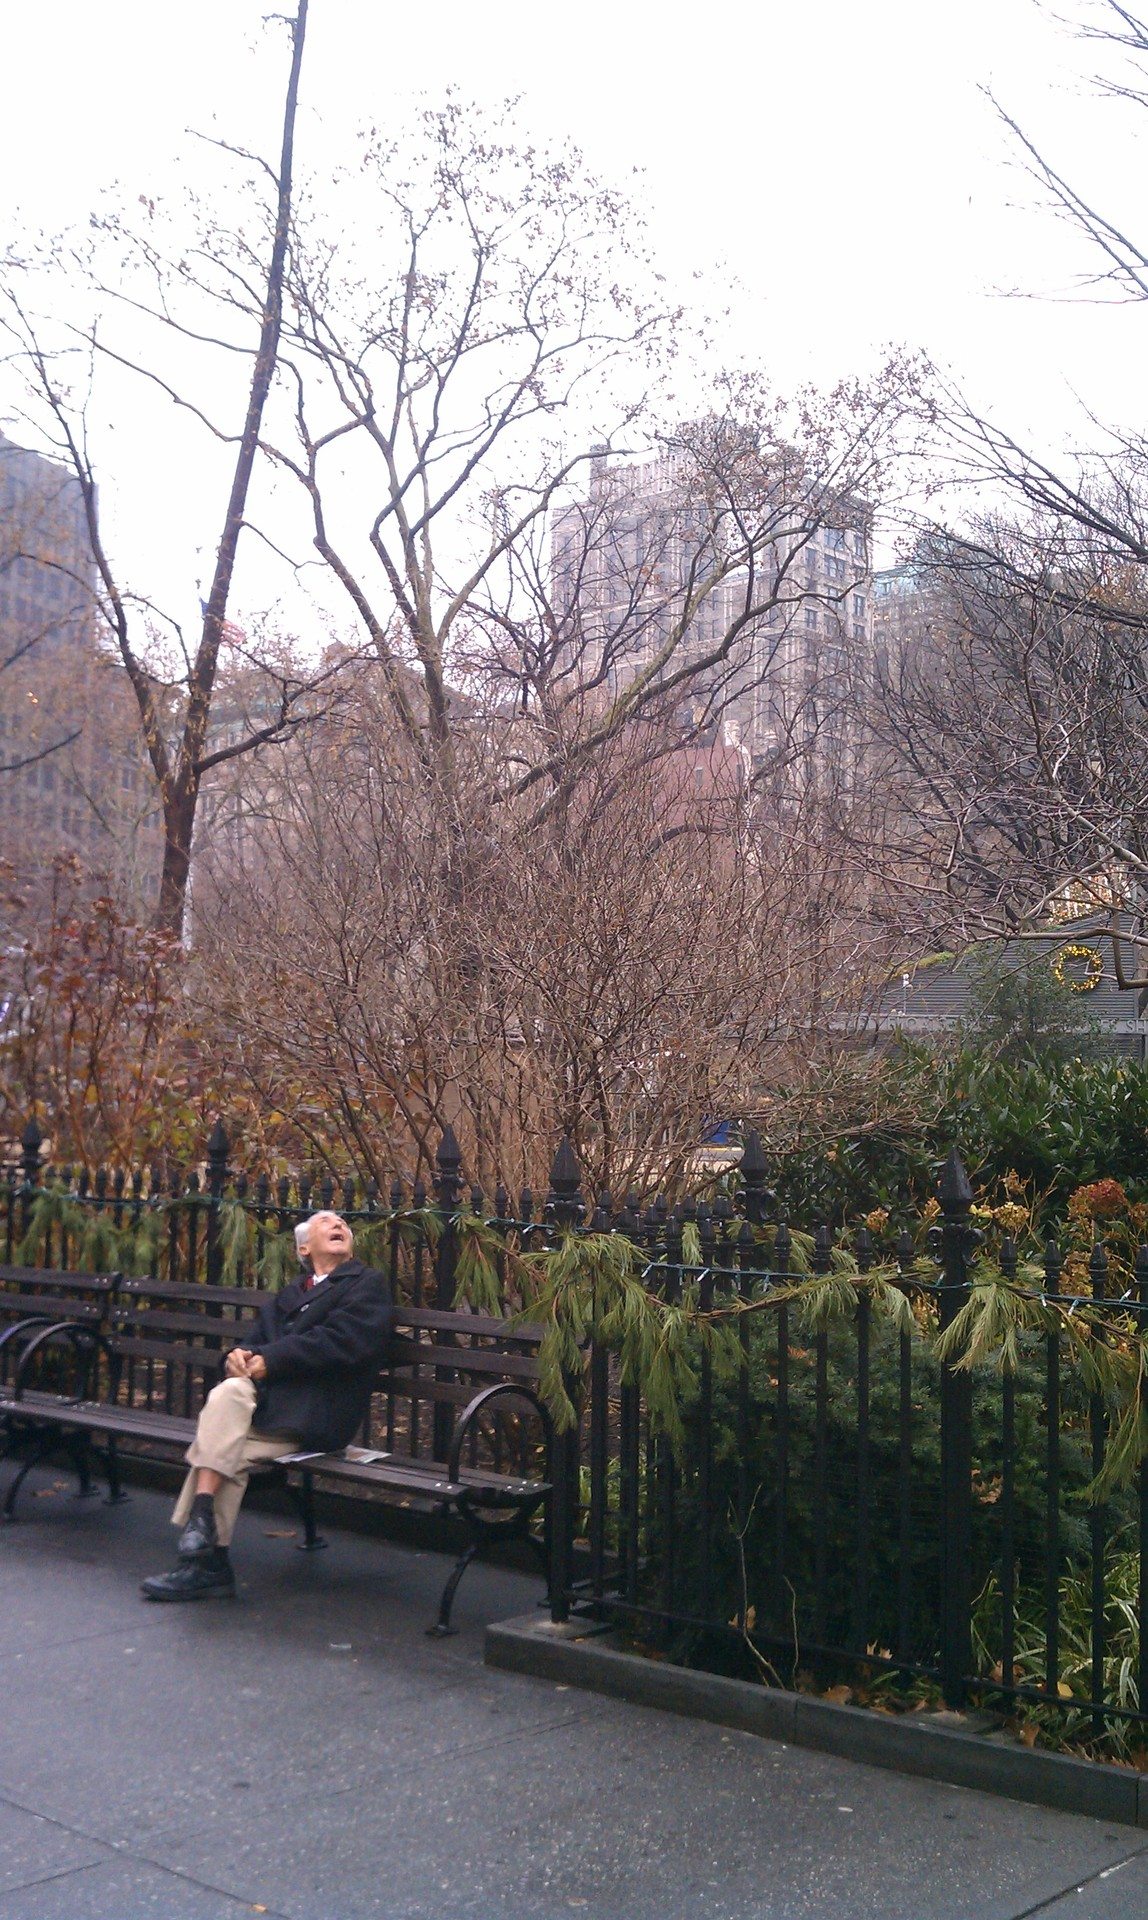 This man made my morning. He was sitting silently on a bench outside of Madison Square Park as I came walking from the 6. He saw a flurry of birds fly overhead - and lifted his head to see the commotion. He looked so enthralled, I had to steal a photo from across the street.